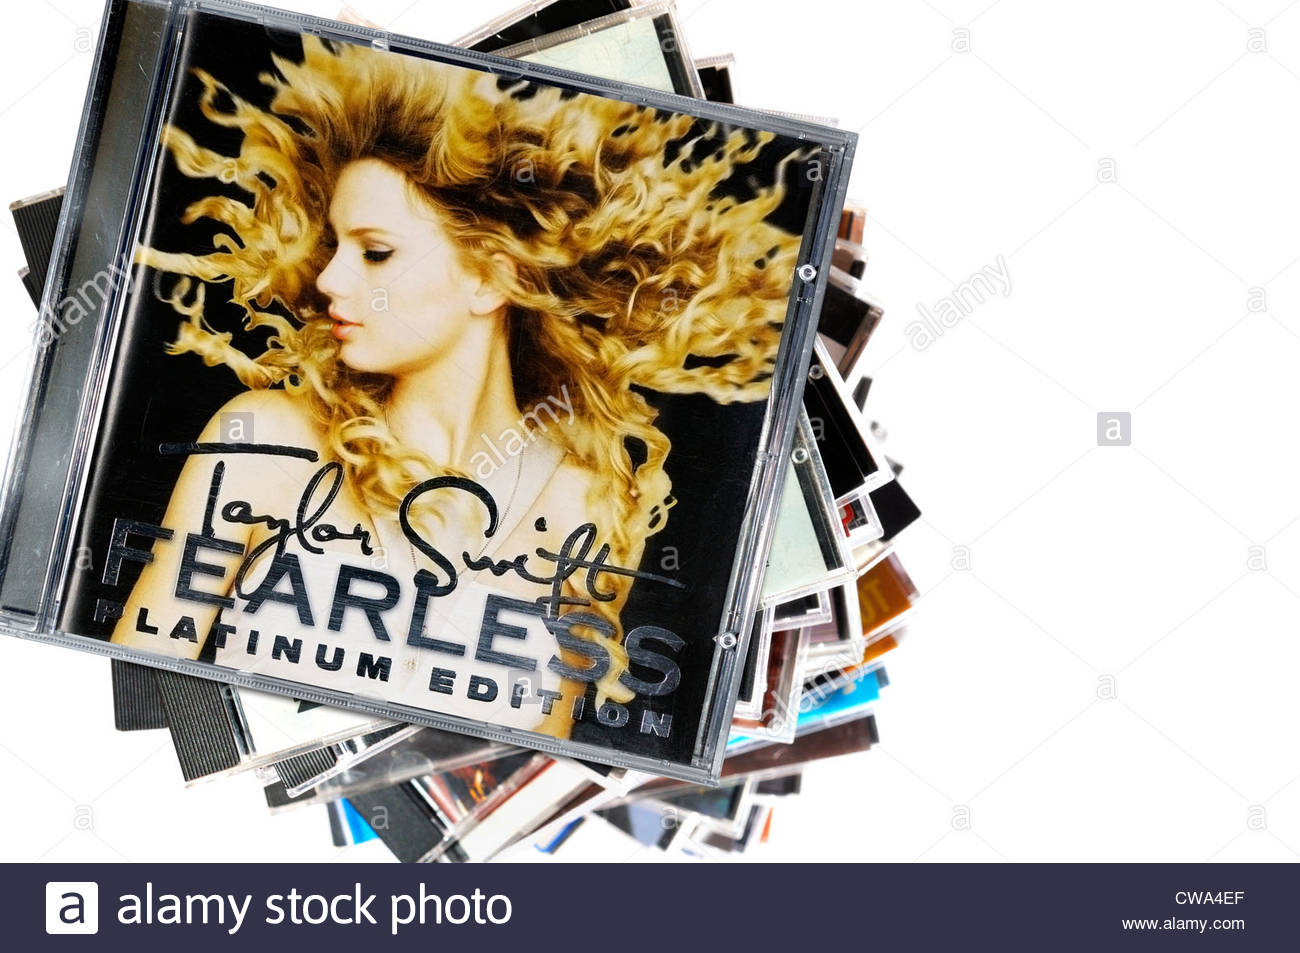 Country Music Female Singer Stock Photos Country Music Female